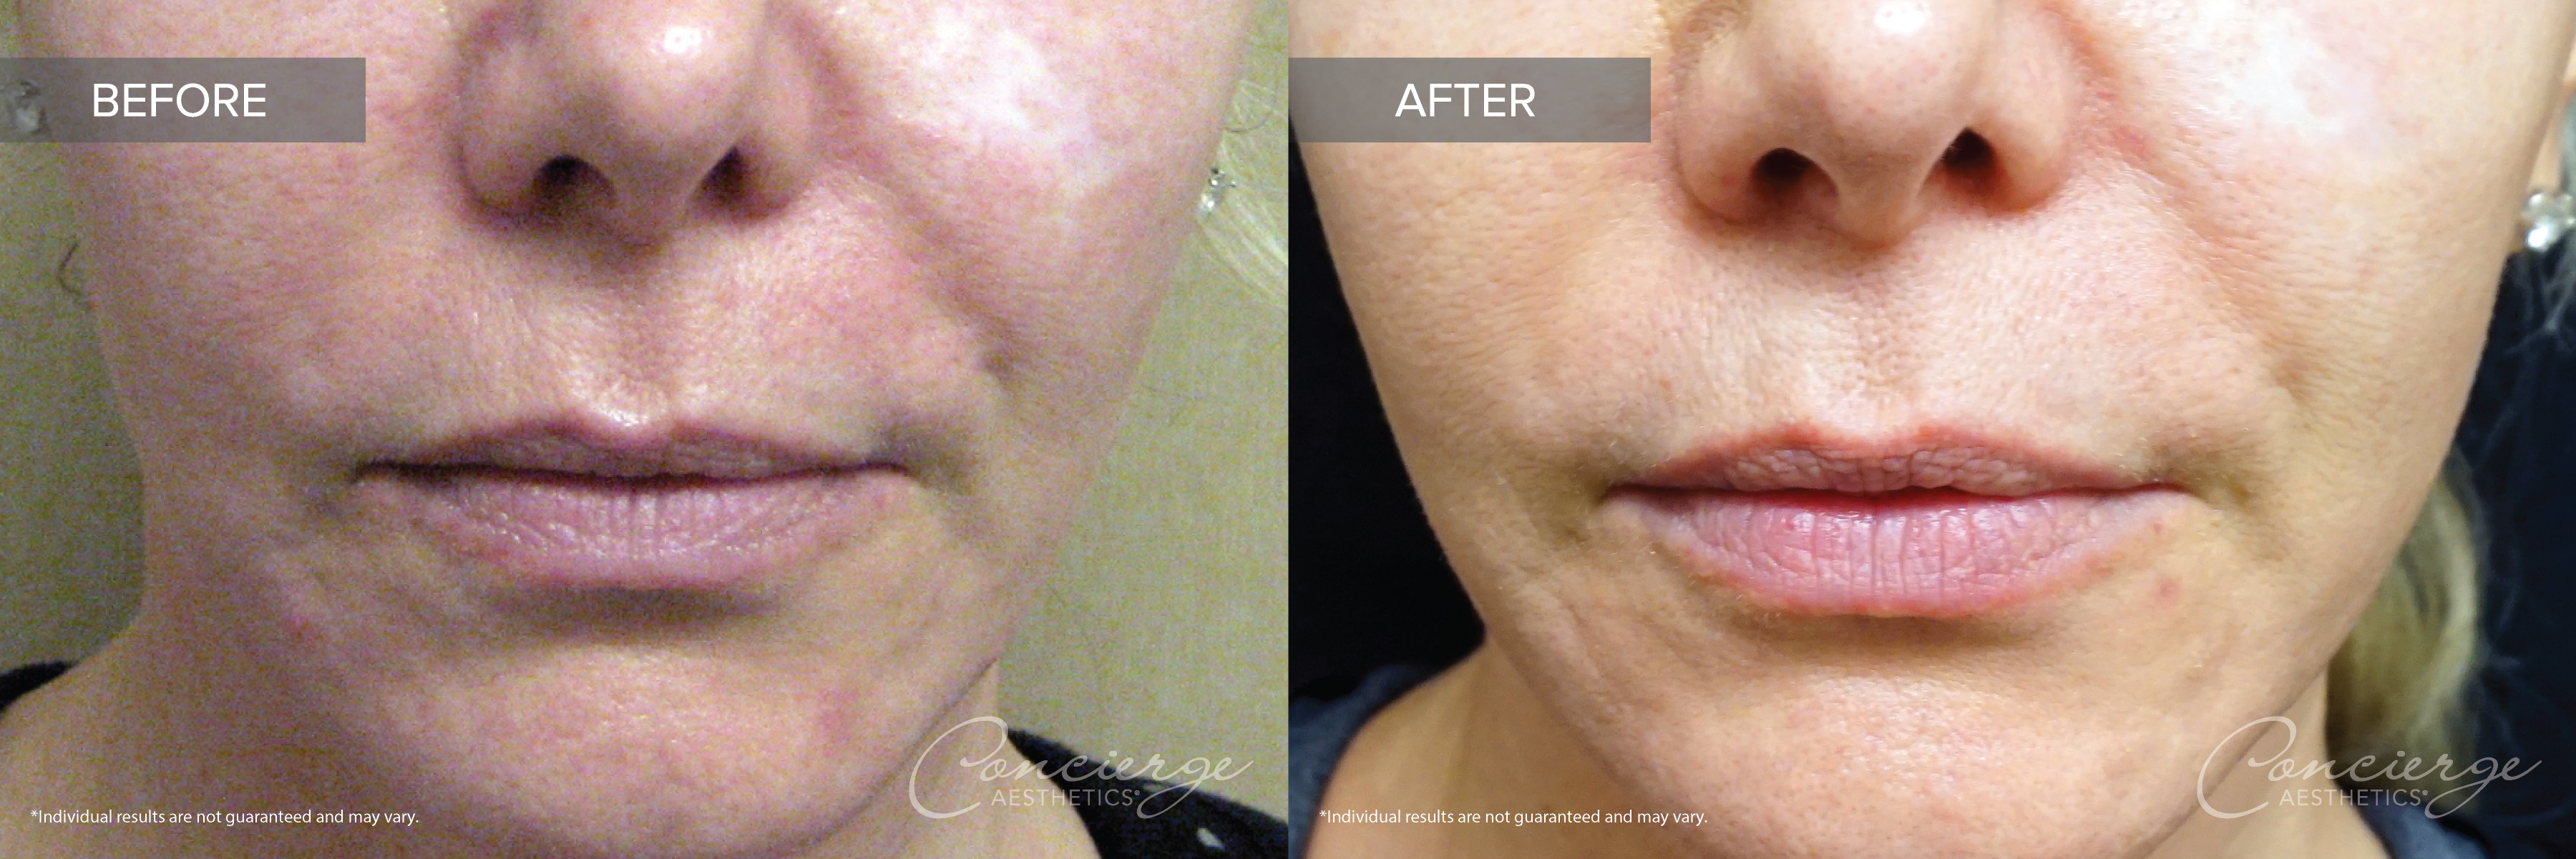 Laser Genesis and IPL Before and After Photos - Concierge Aesthetics - Irvine, CA